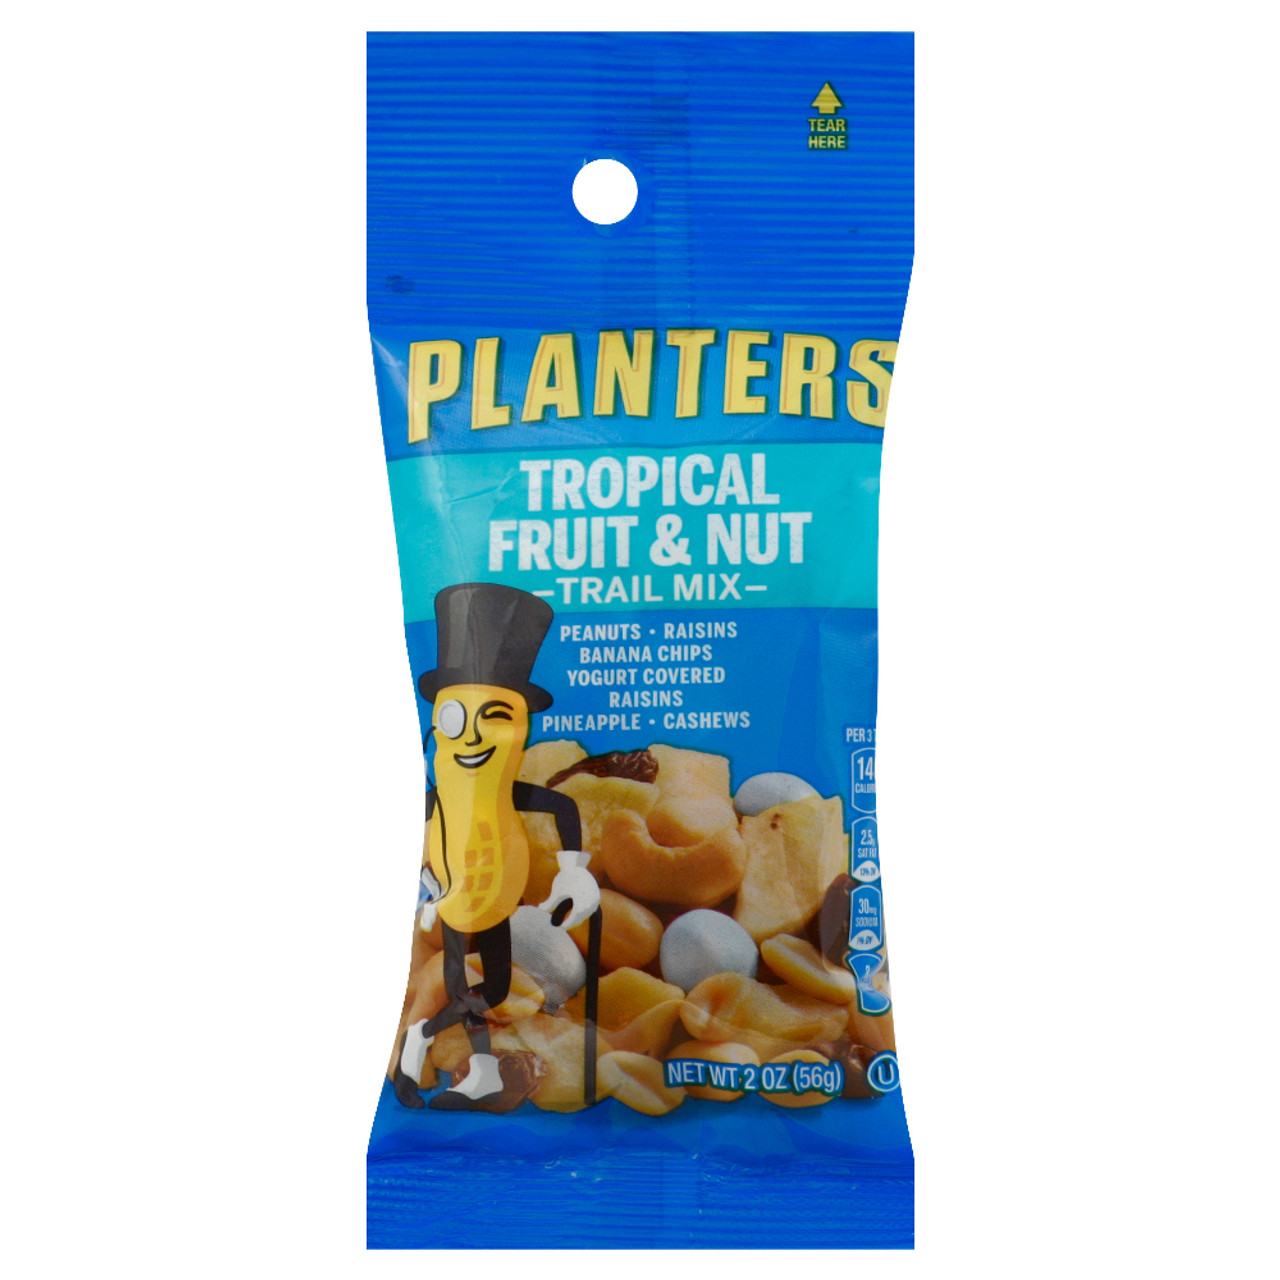 Planters Trail Mix, Tropical Fruit & Nut, 2 Oz Tube (1 Count ... on trial mix, tortilla mix, snack mix, party mix, soup mix, chex mix, vanilla pudding mix, just mix, planters cheese curls, planters peanuts, chocolate pudding mix, mocha coffee mix, bisquick mix, planters spicy nuts cajun sticks and, planters cocoa almonds,